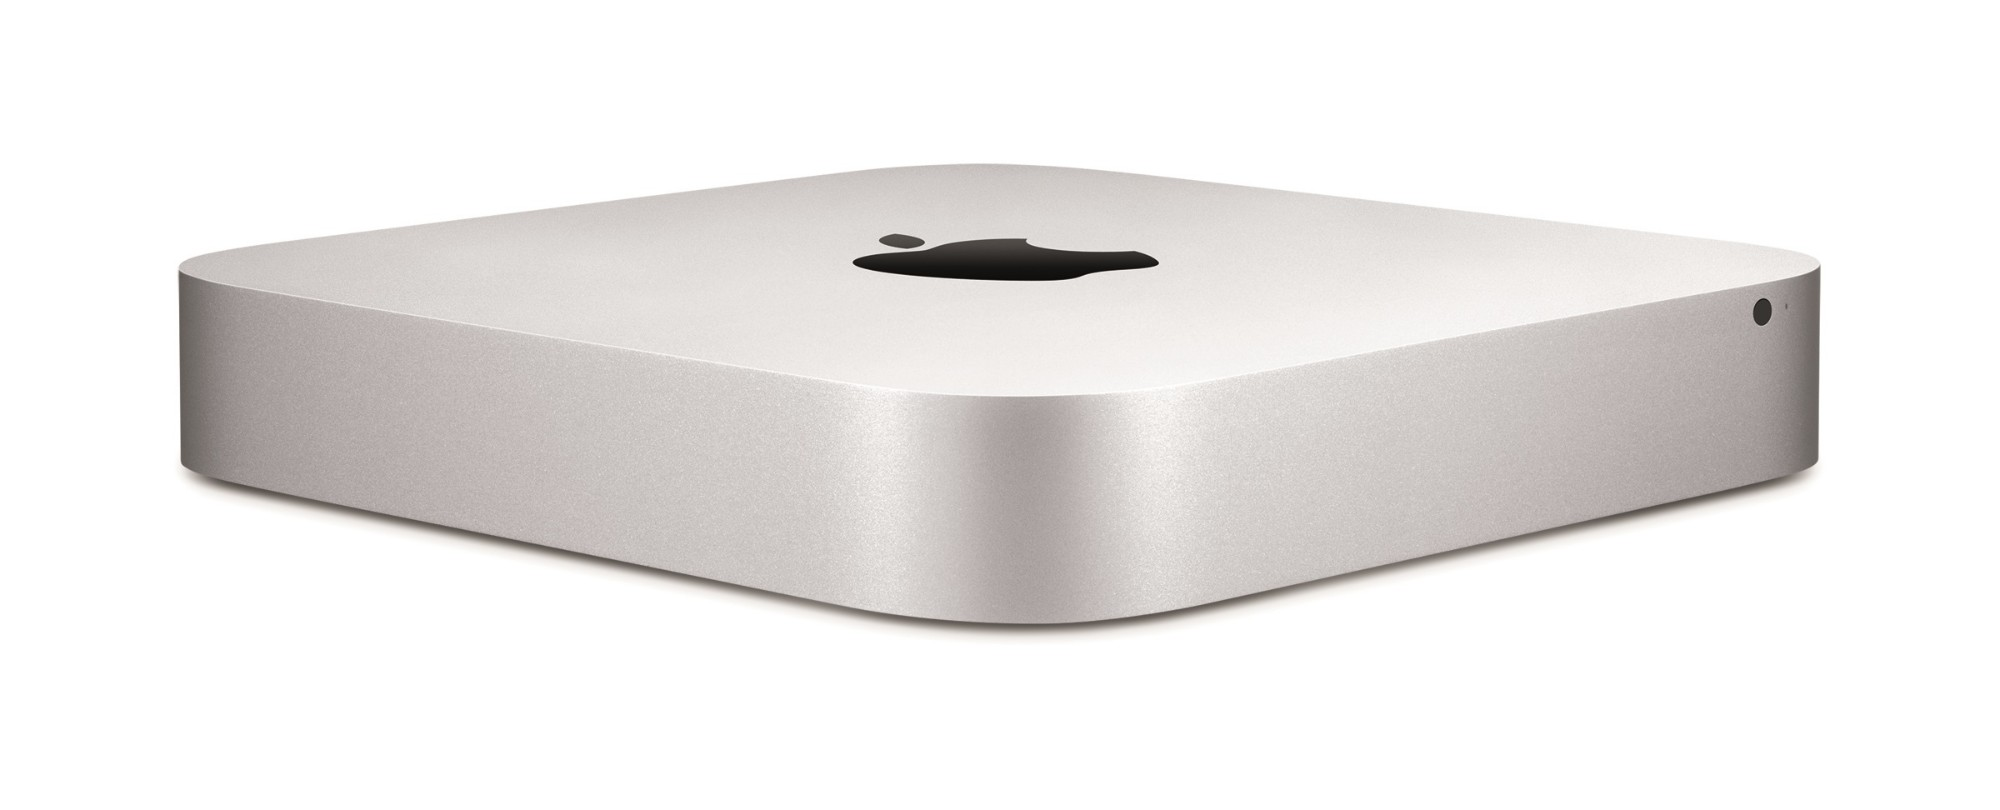 Apple Mac mini 3.0GHz 3GHz Nettop Silver